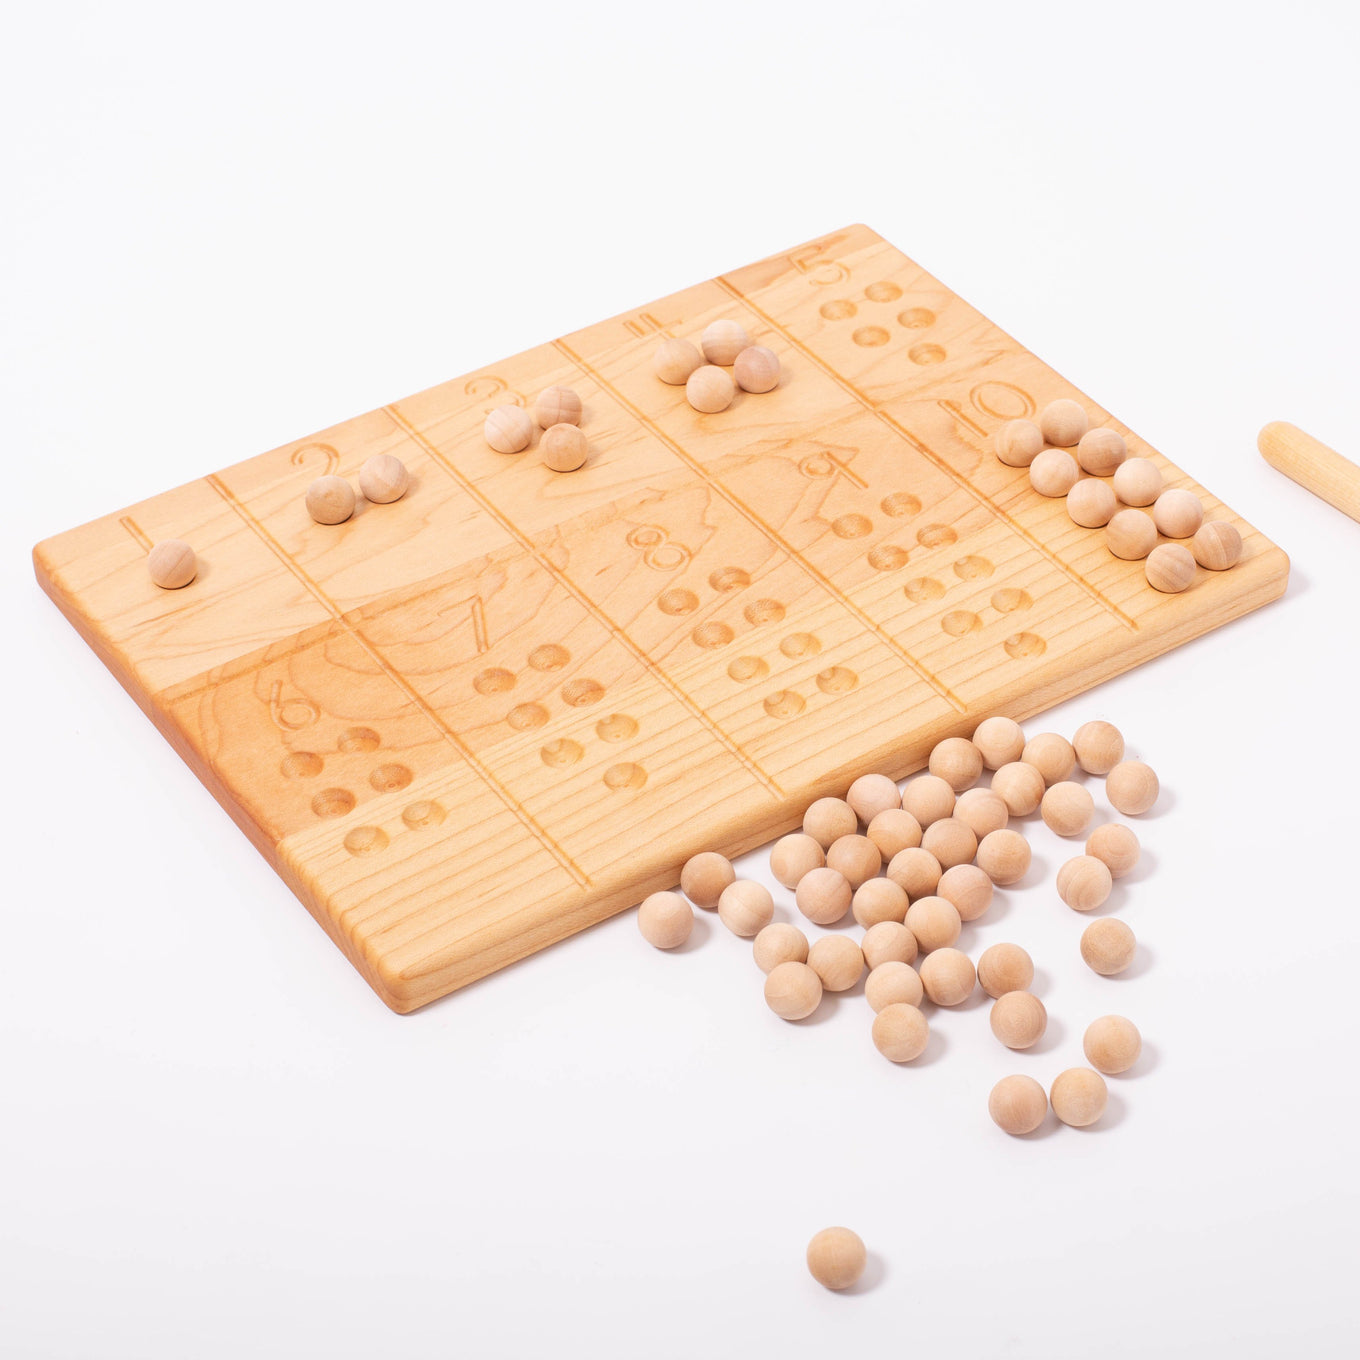 Reversible 1-10 board with Wooden Balls